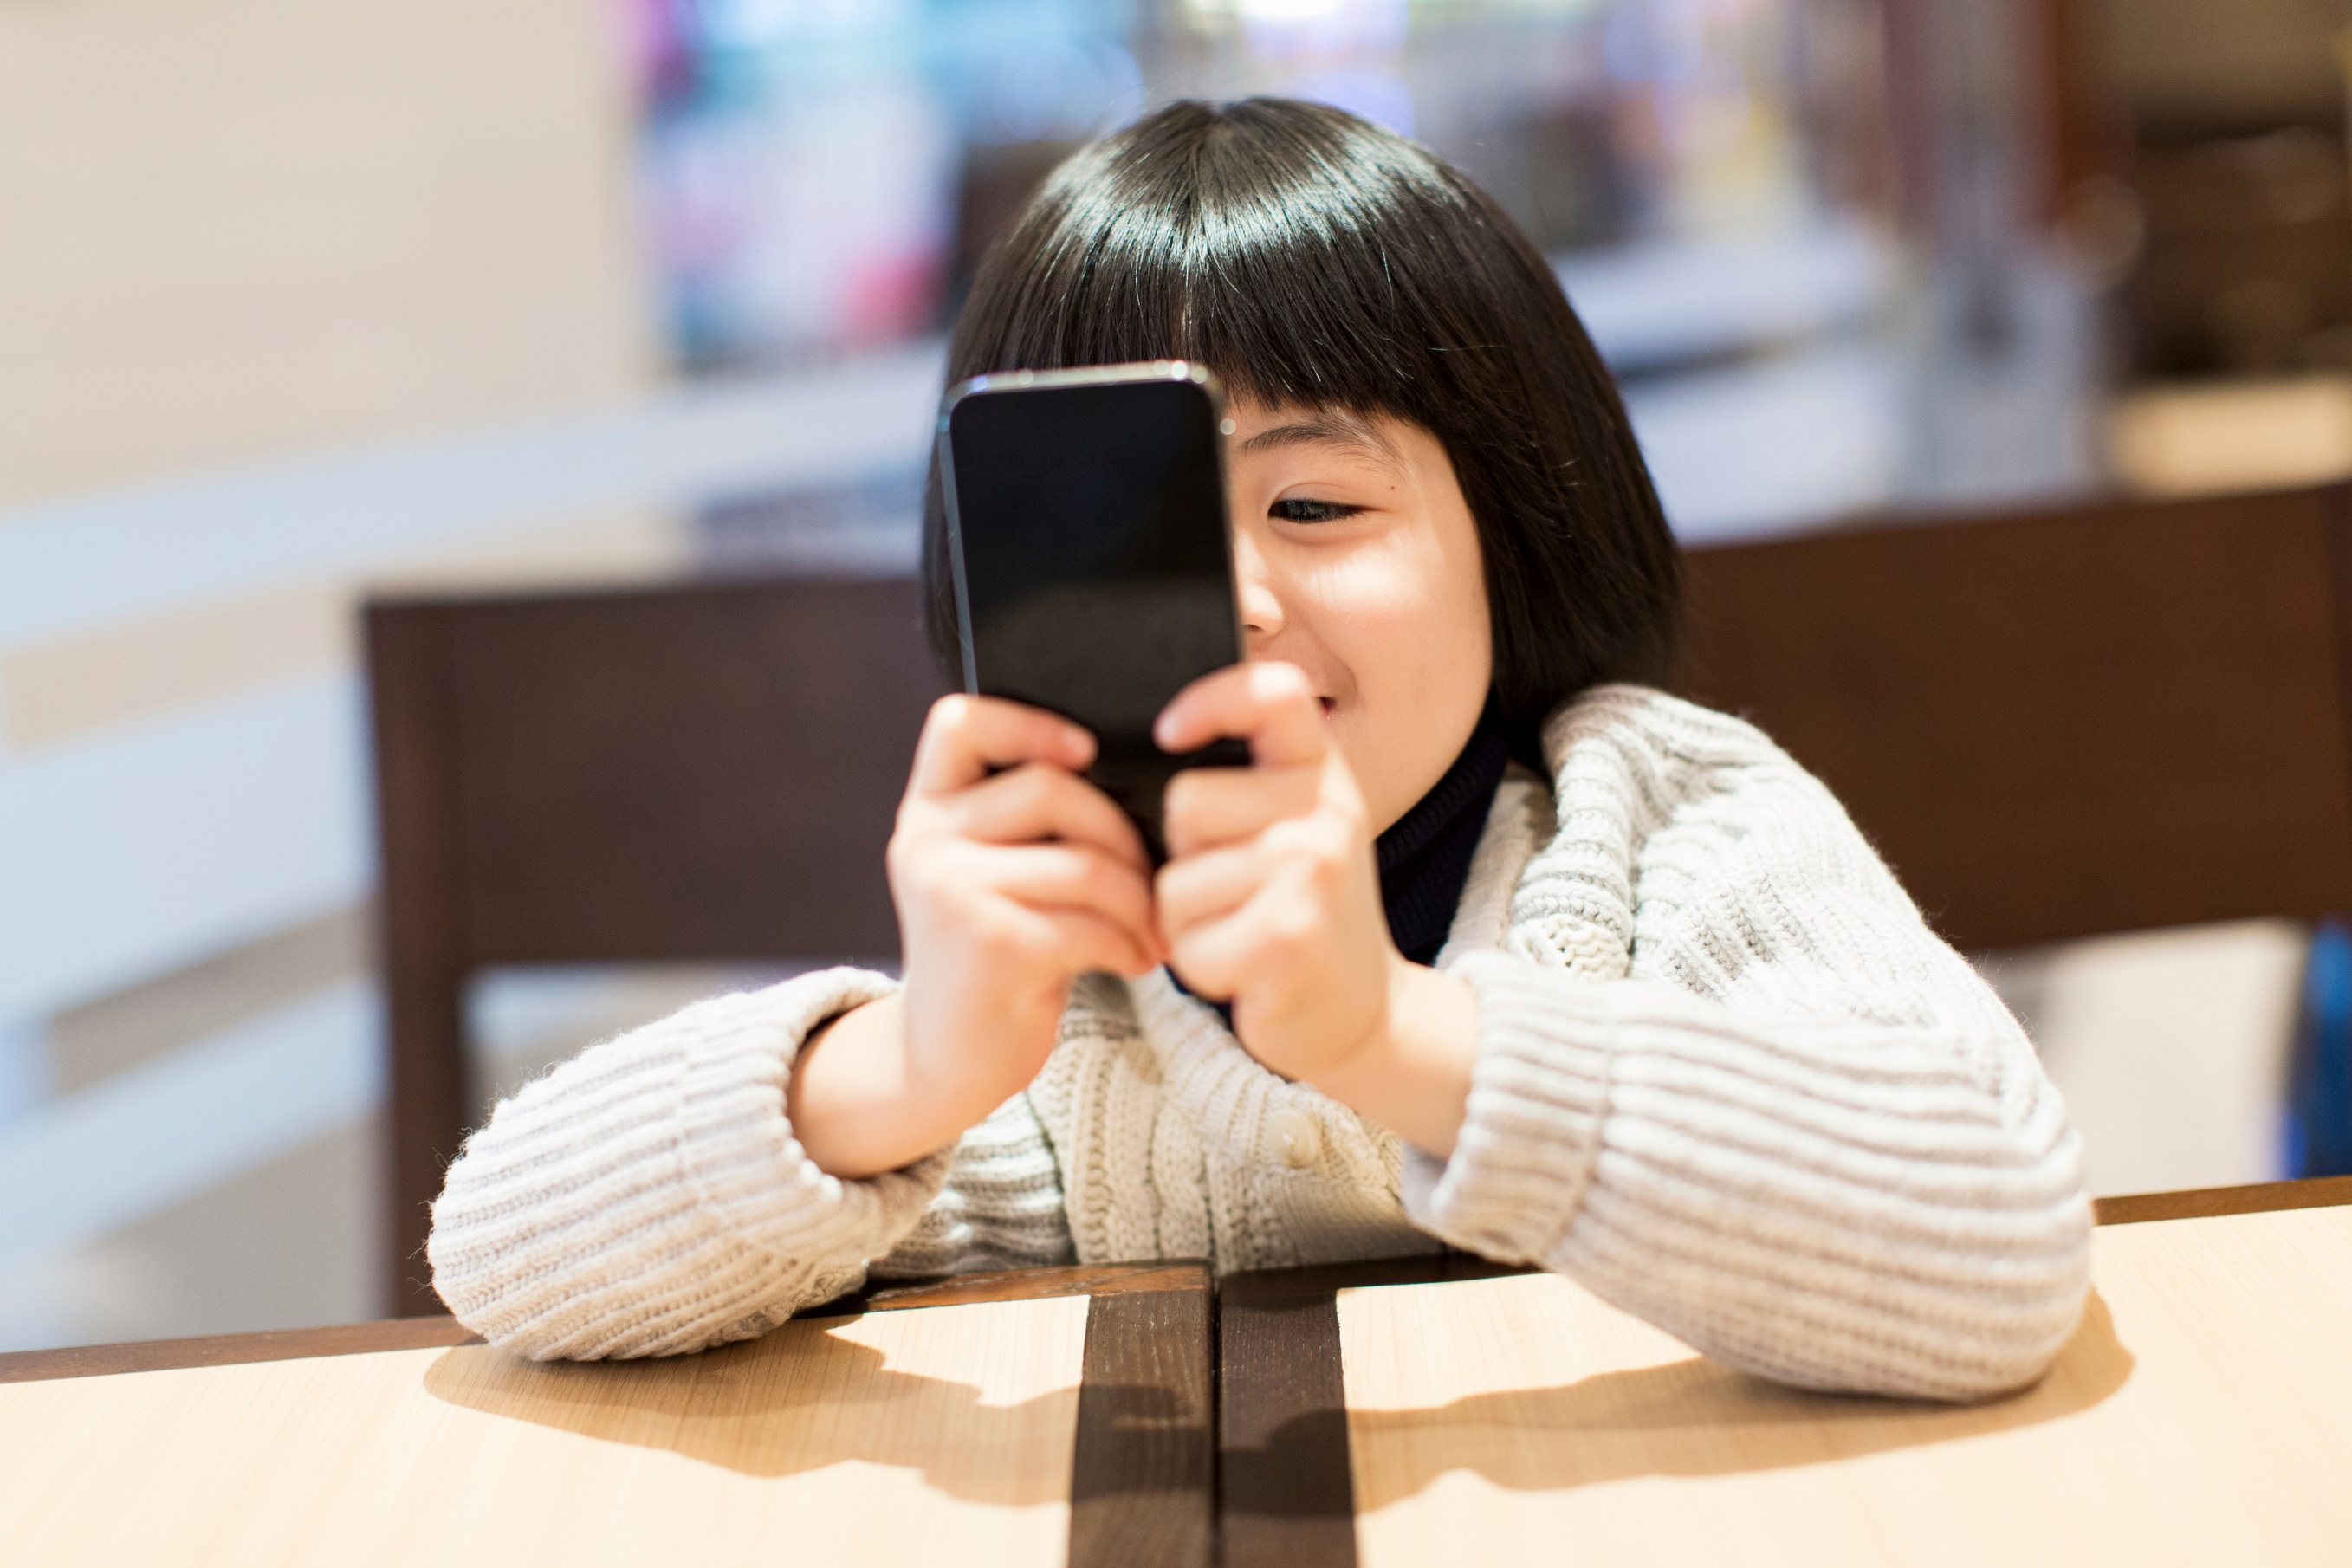 girl with smartphone. Digital Detox: Is your child turning into a digital addict?